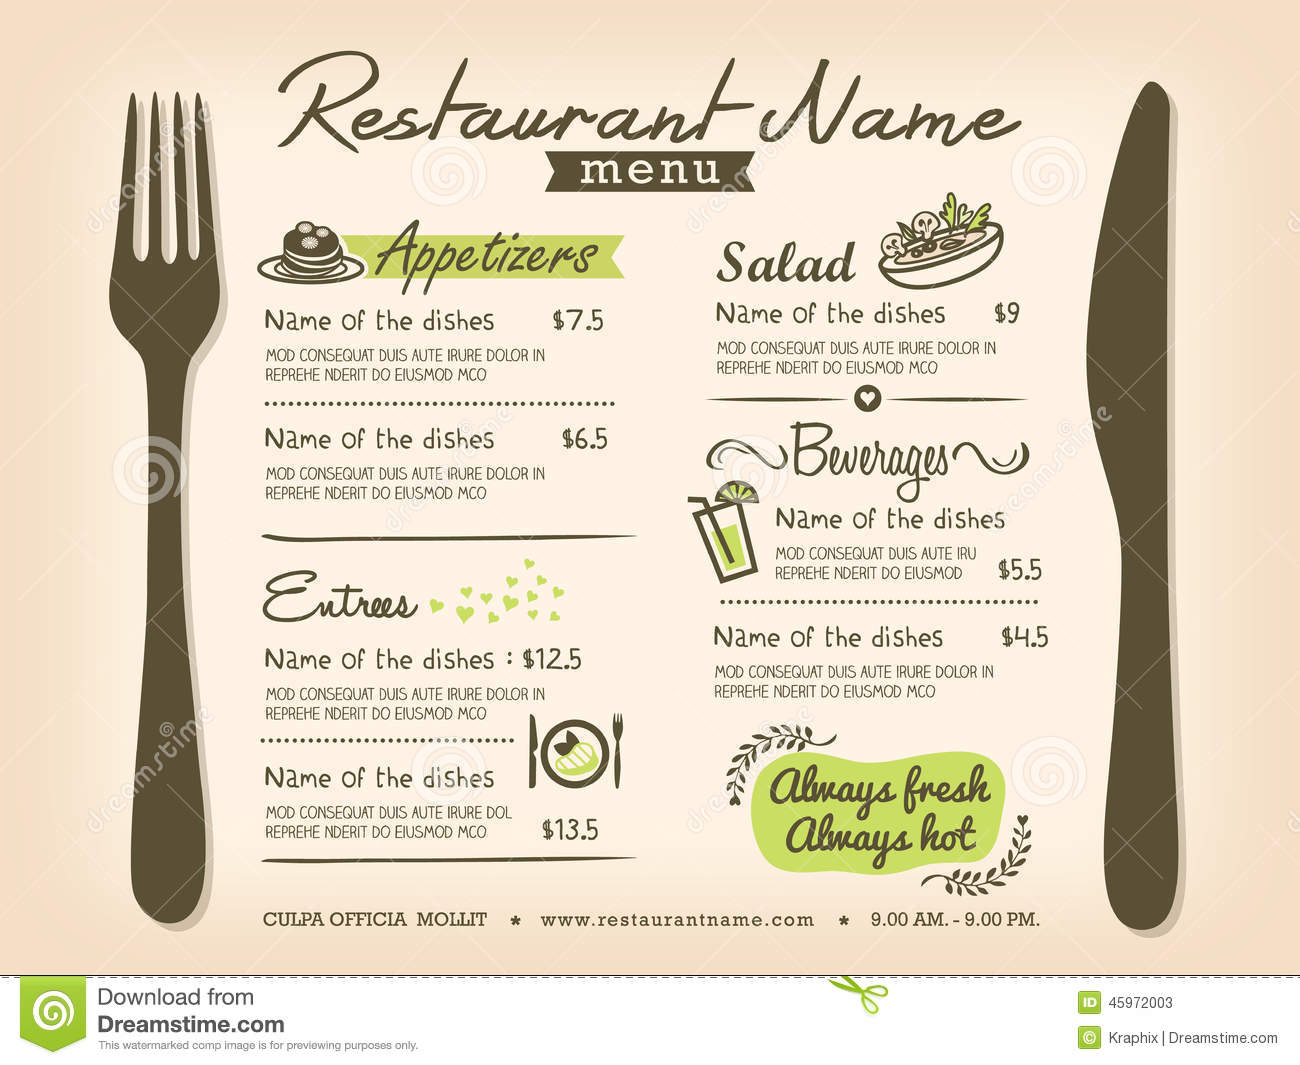 Restaurant Placemat Menu Vector Design Layout Stock Vector  : restaurant placemat menu vector design layout template 45972003 from www.dreamstime.com size 1300 x 1065 jpeg 142kB